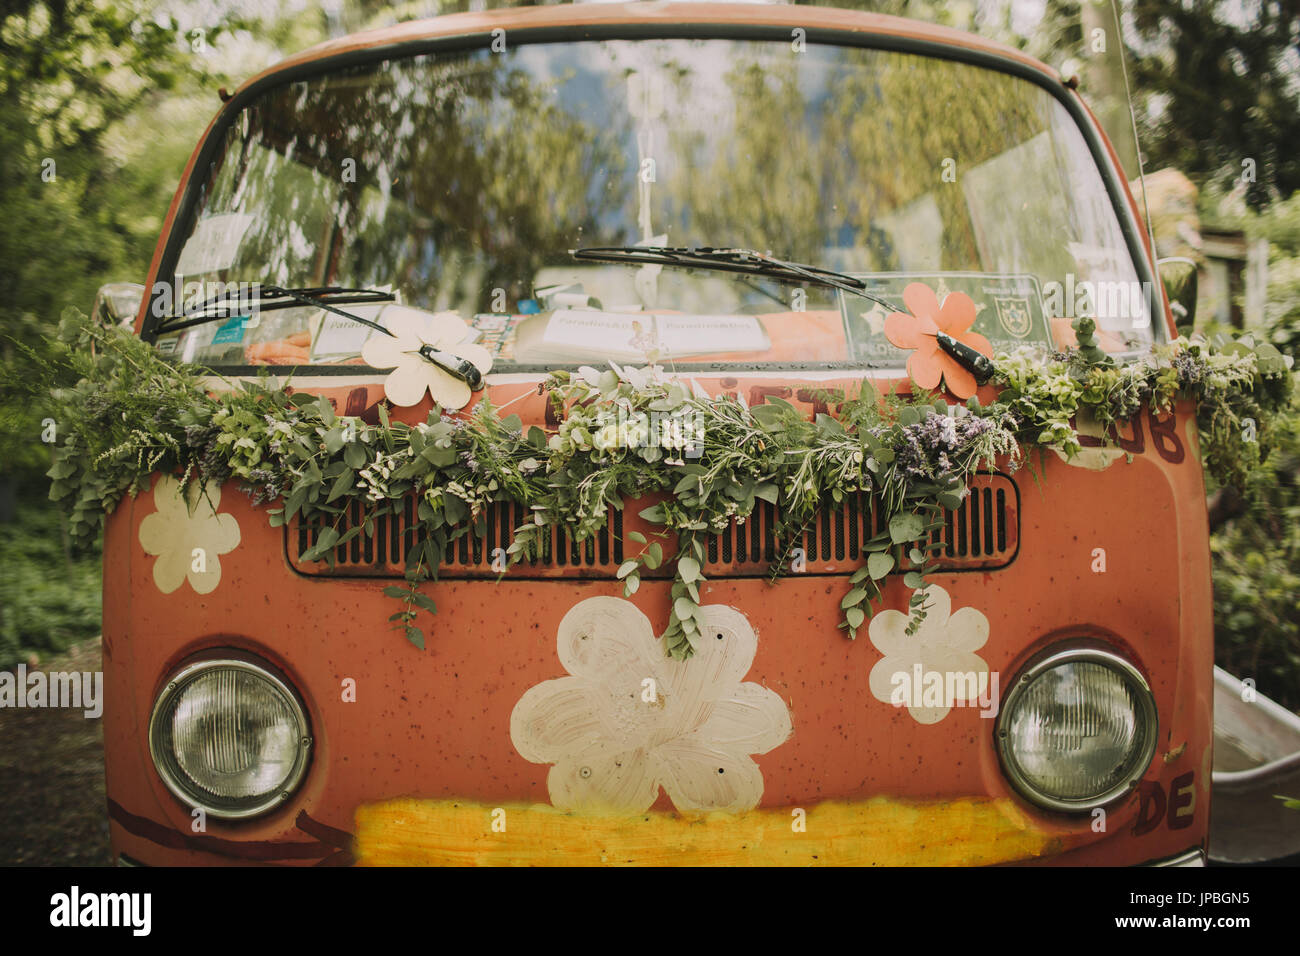 Old VW bus as a wedding car, close up - Stock Image